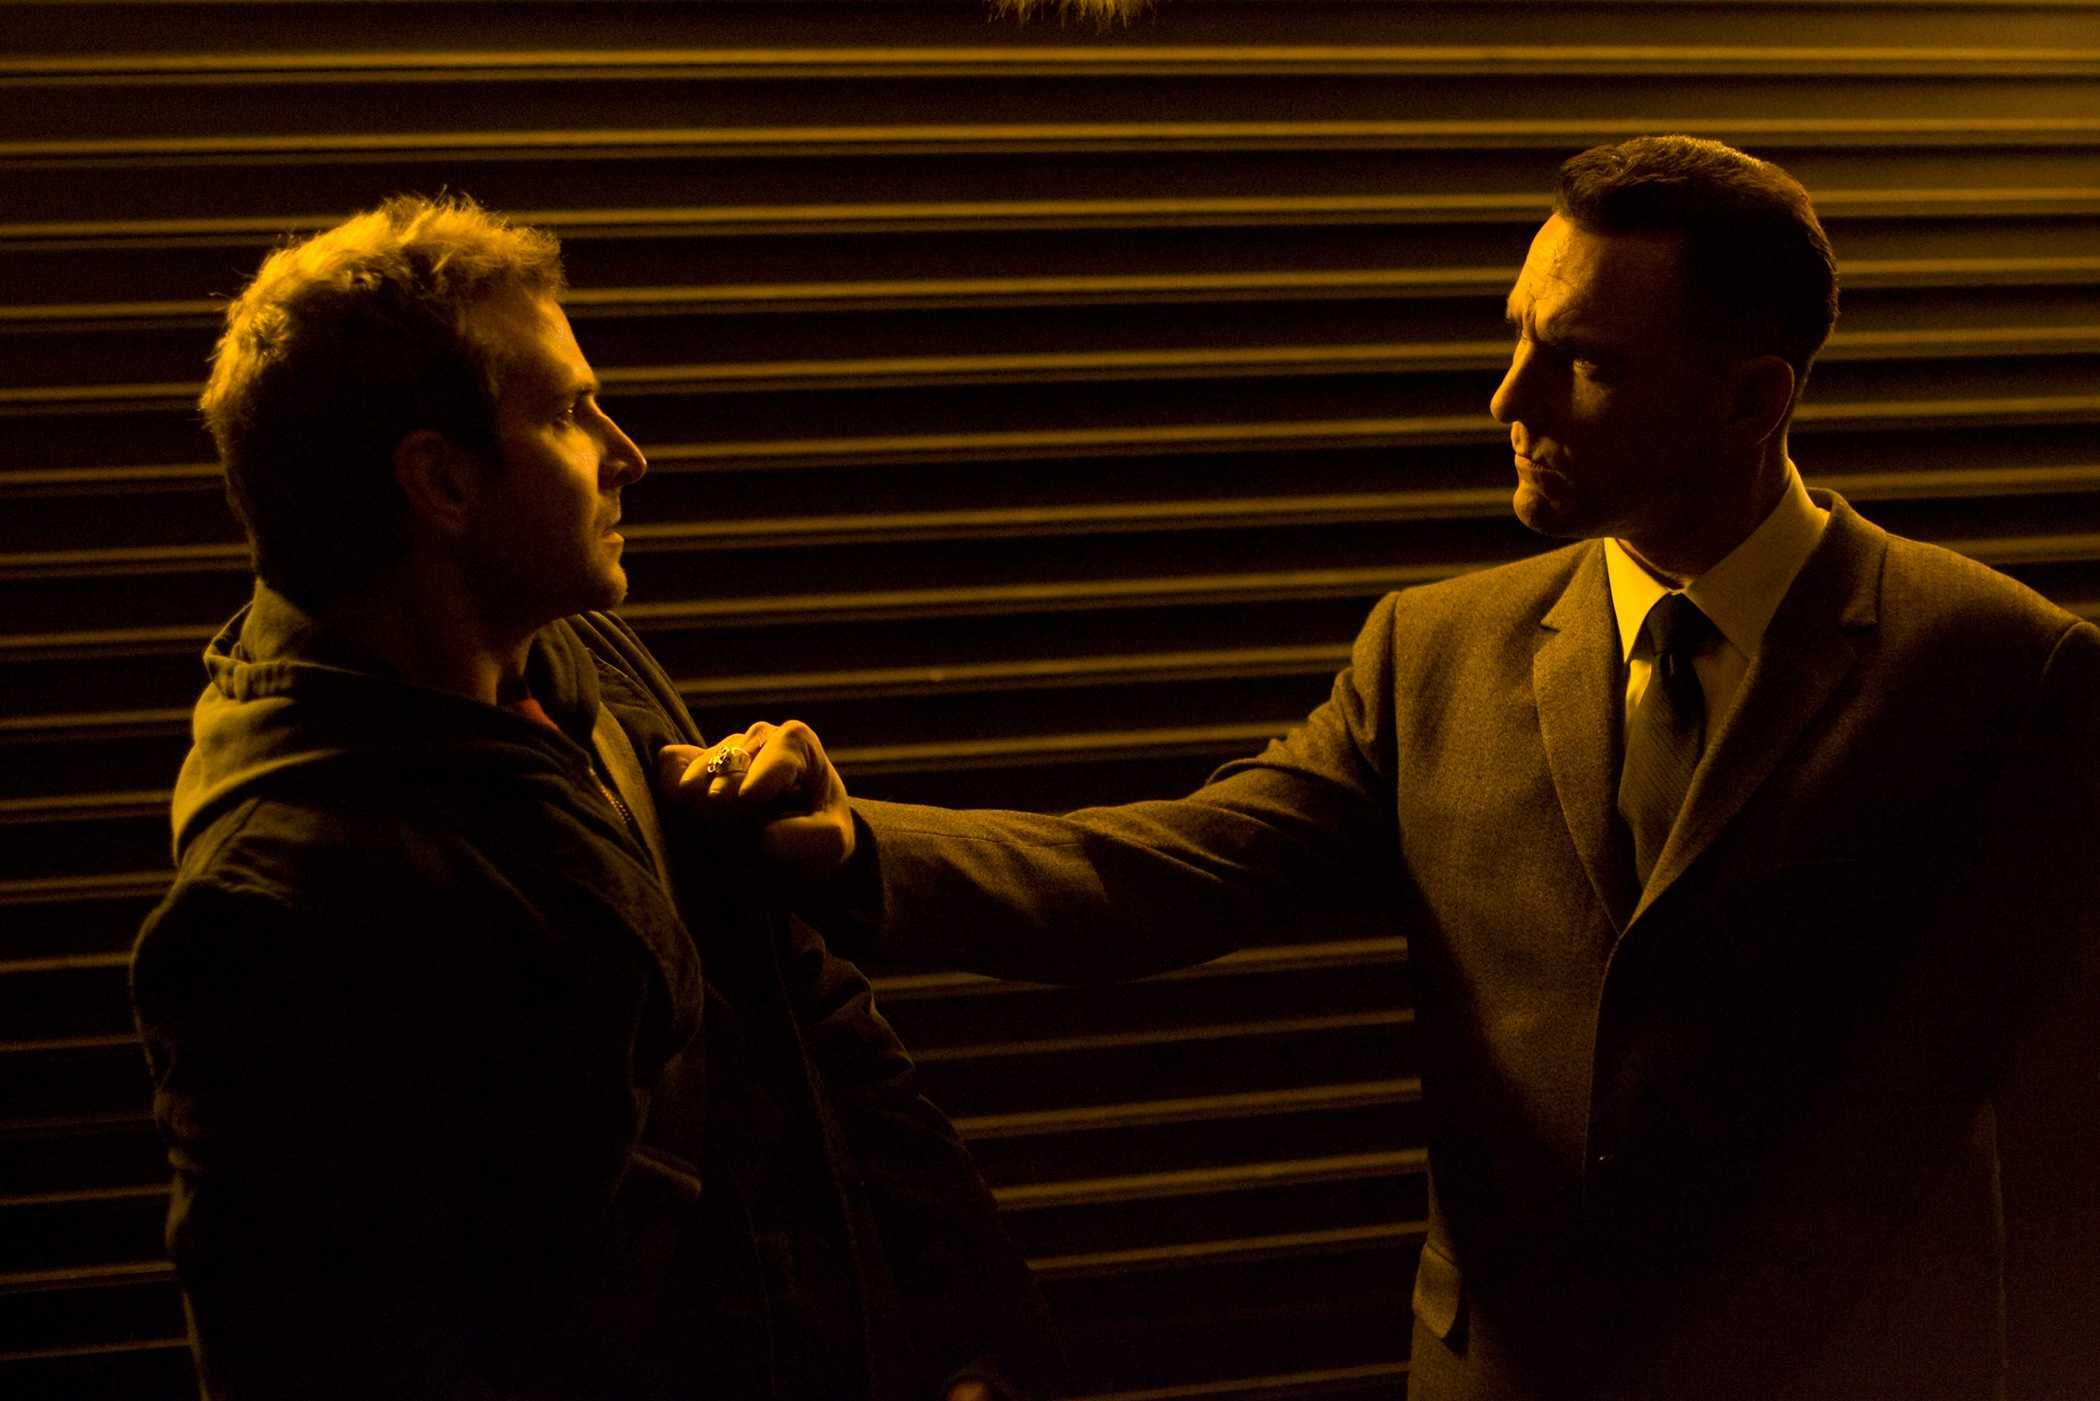 Confrontation between Bradley Cooper and Vinnie Jones in The Midnight Meat Train (2008)